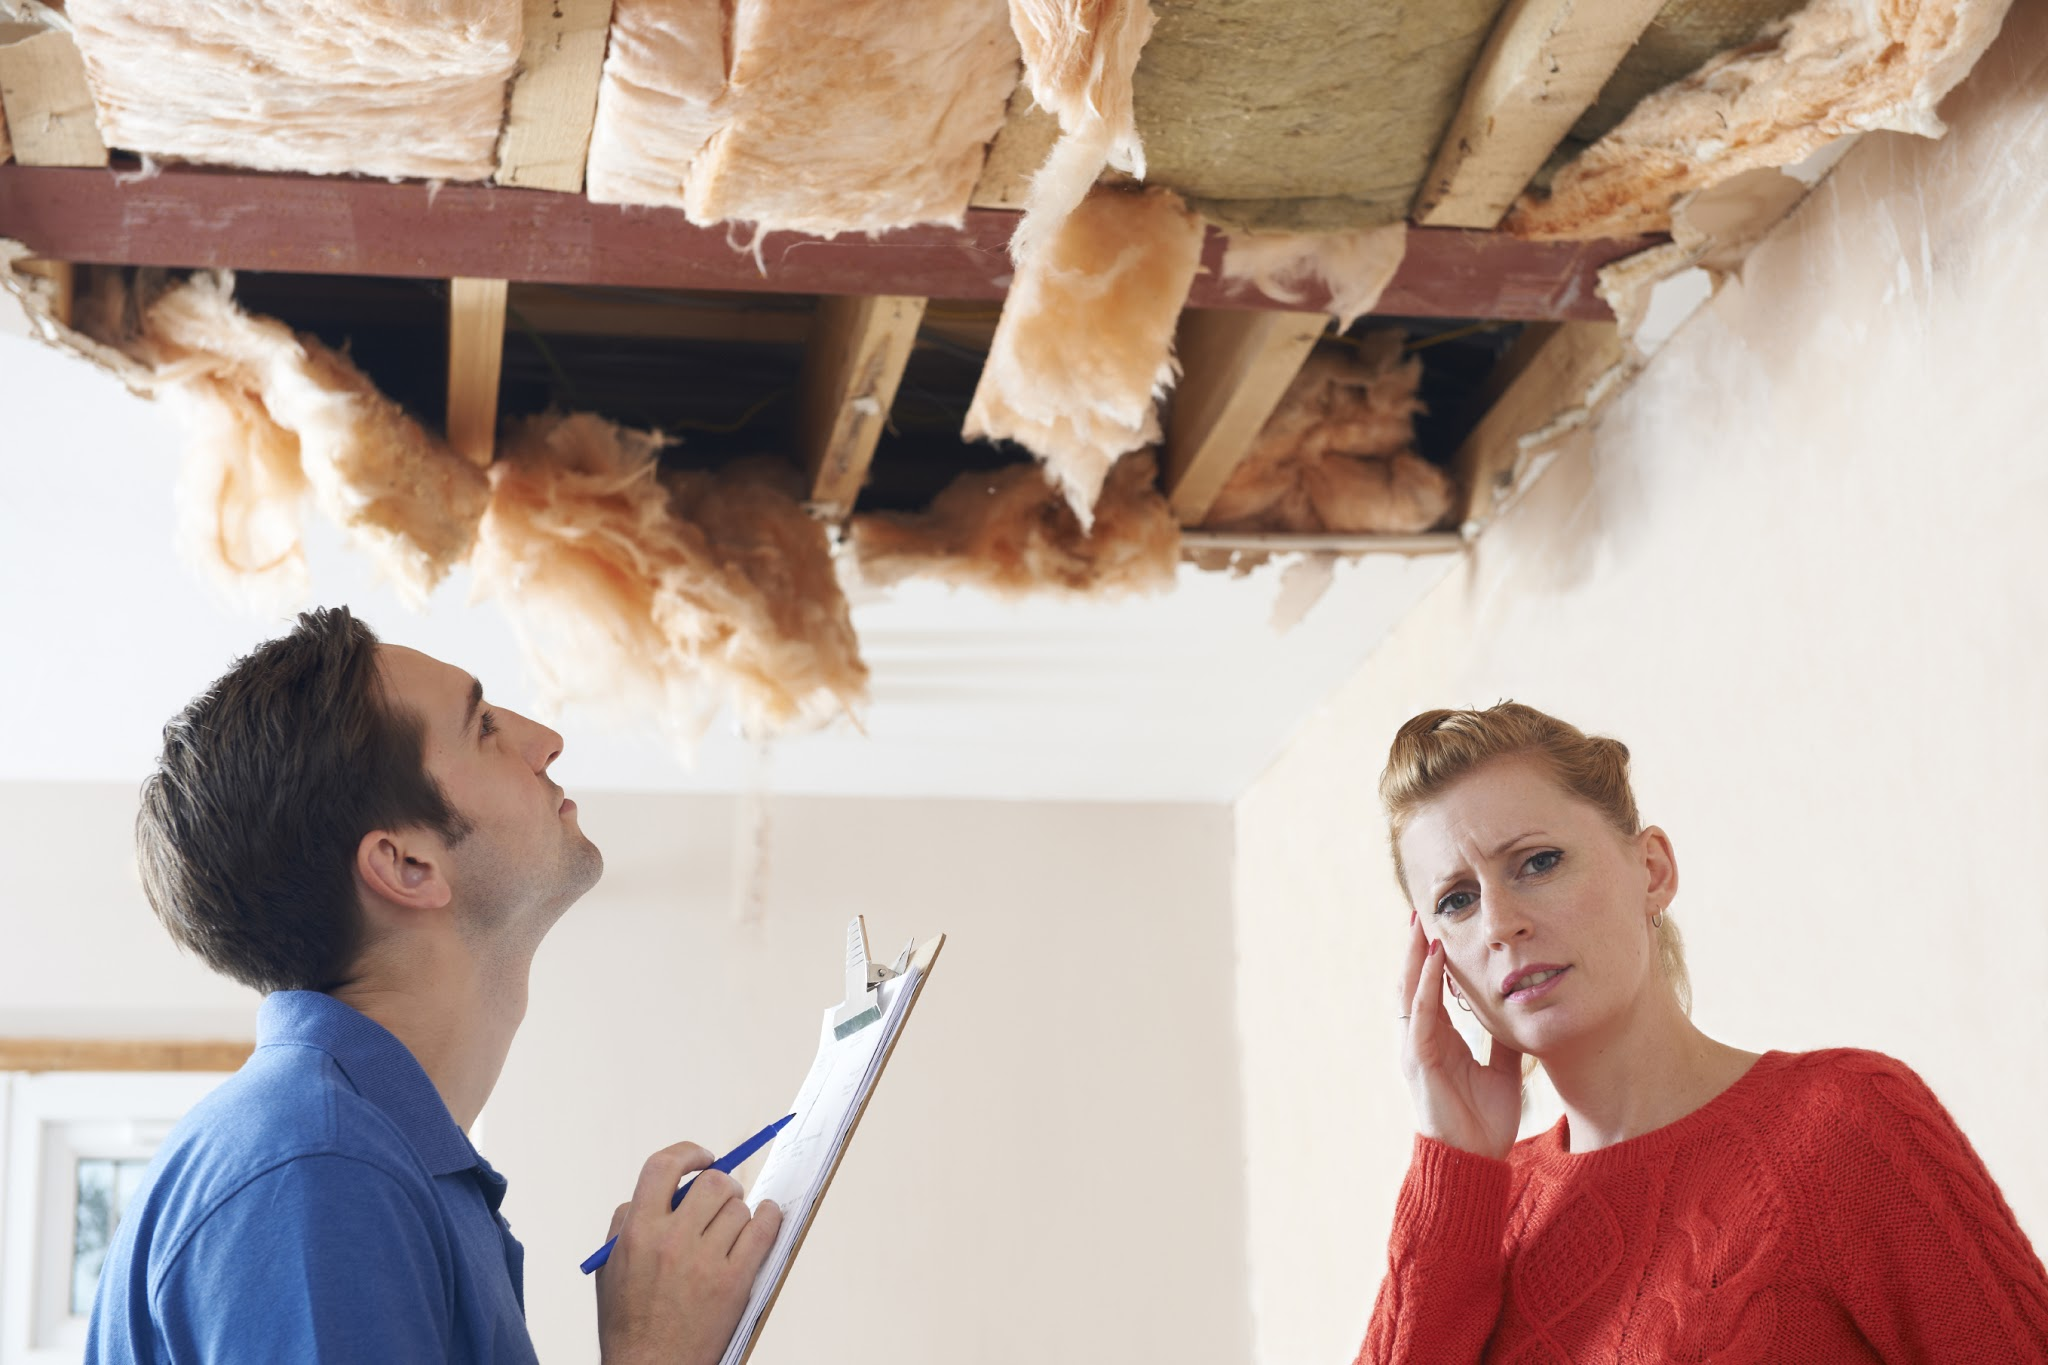 water damage repair Wisconsin free estimate ccspainting local painting company near me